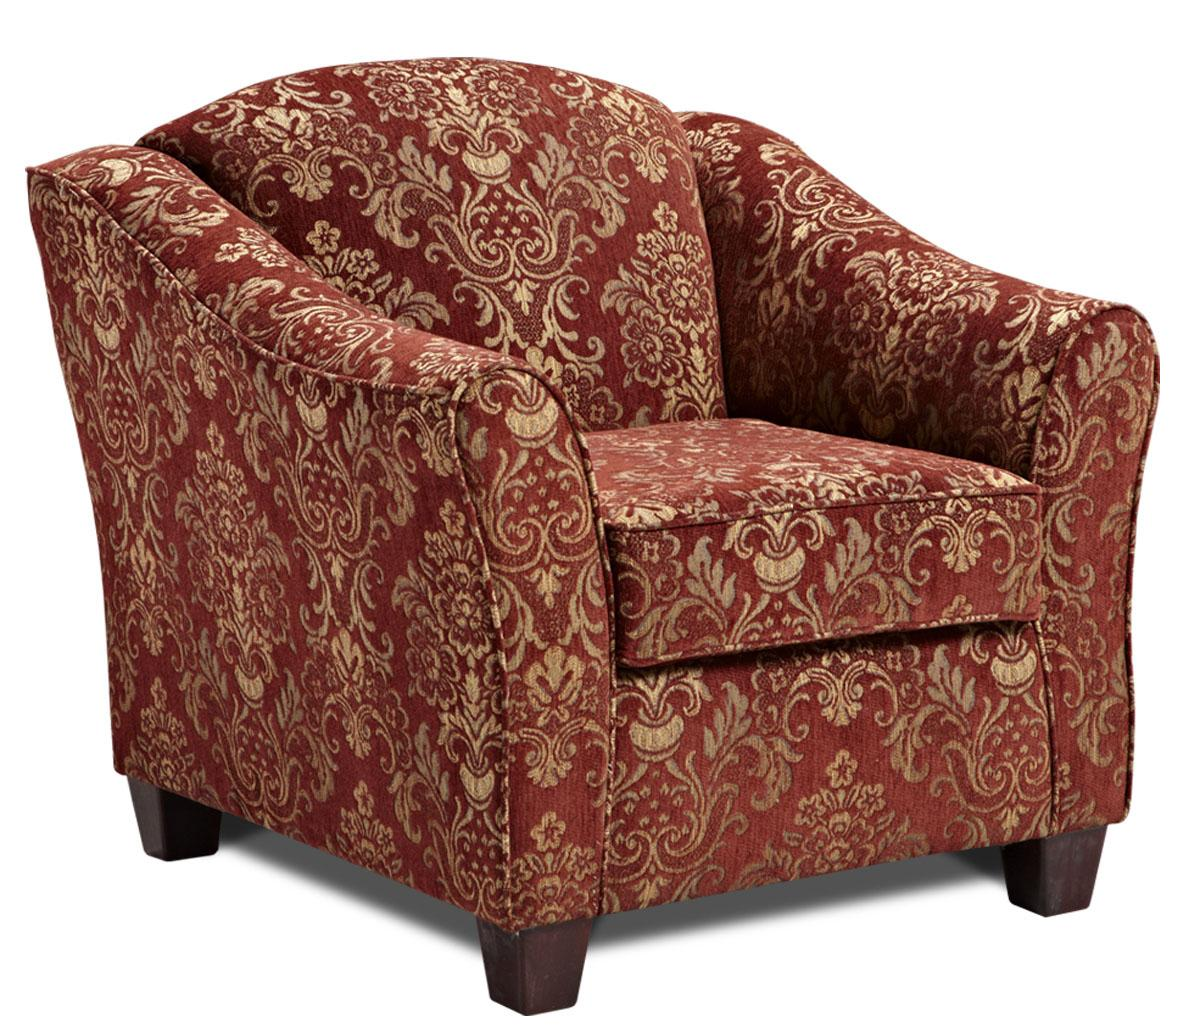 Washington Furniture 9900 Accent Chair With Flair Tapered Arms Del Sol Furniture Upholstered